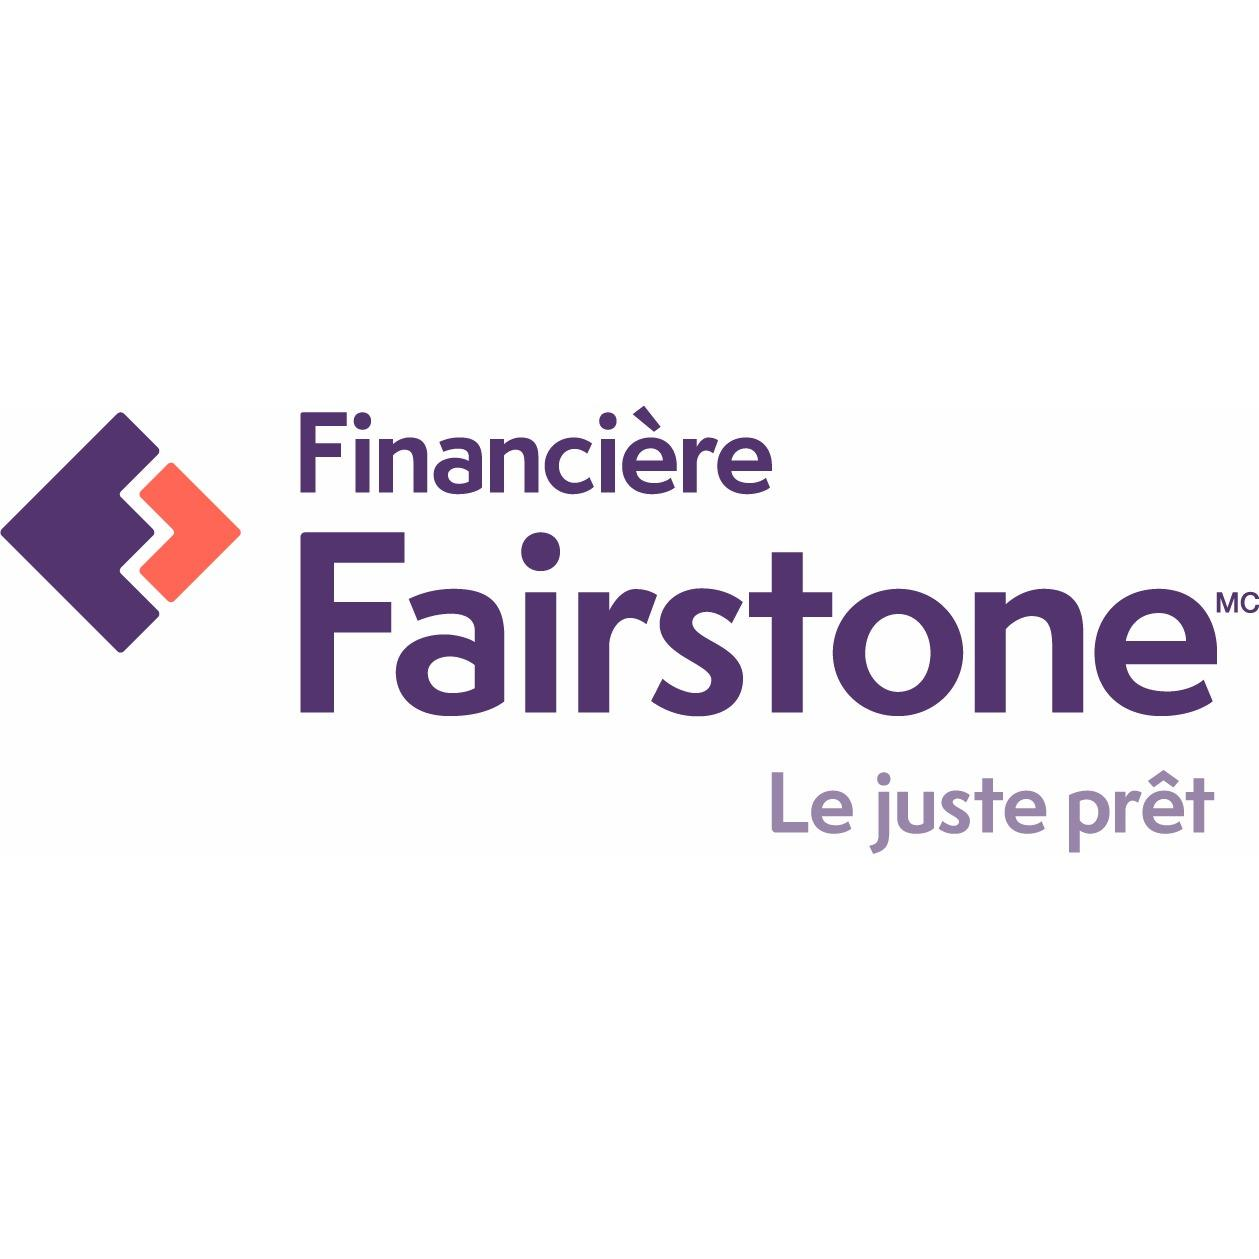 Fairstone, formerly CitiFinancial® à Saint-Hyacinthe